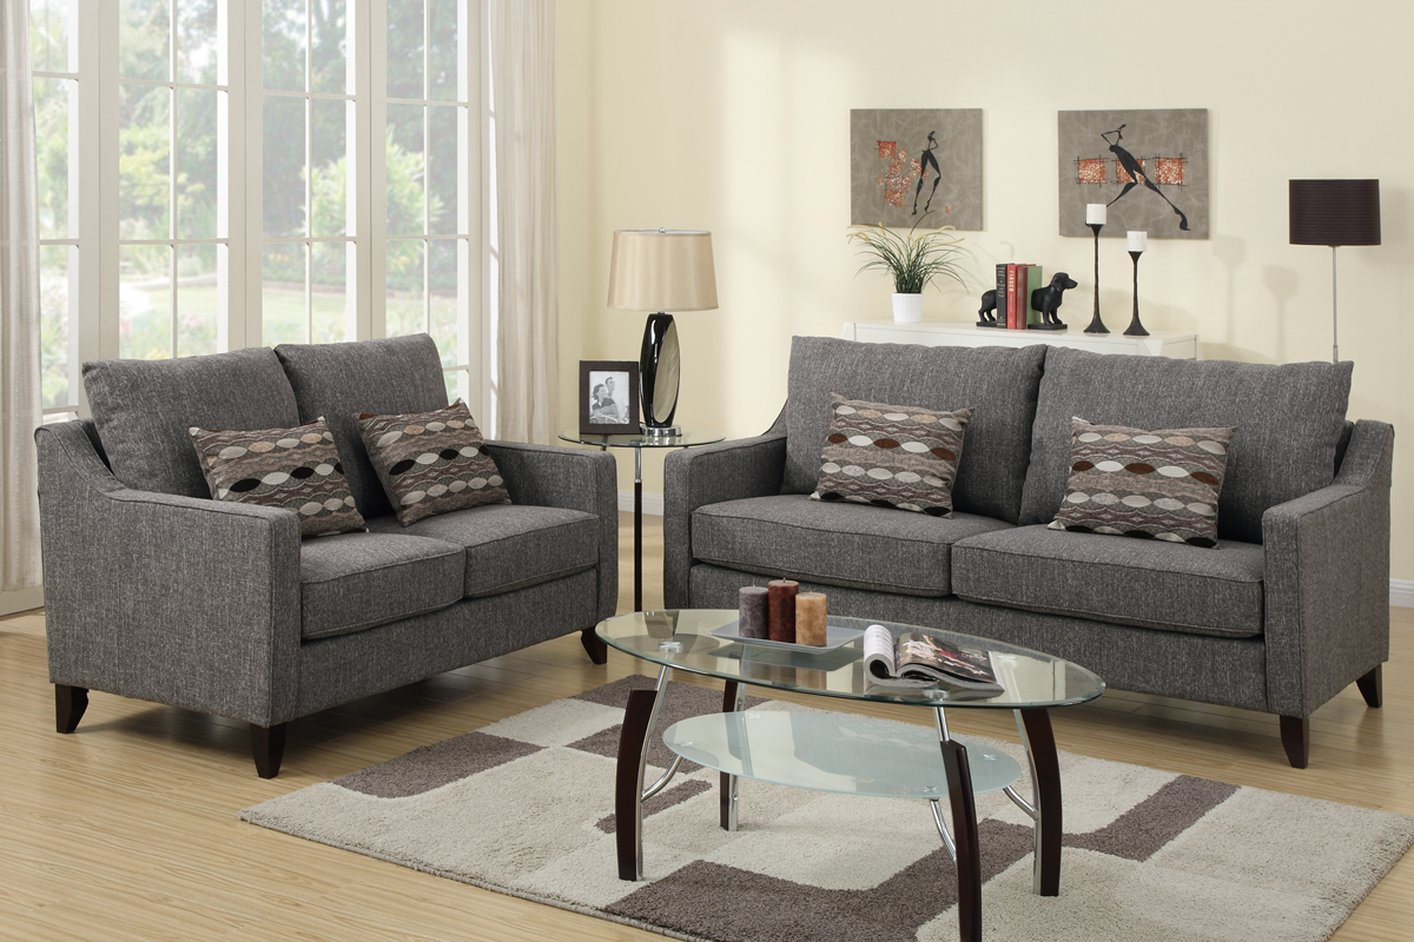 Cool Living Room Sets Leather Cheap Living Room Sets Under 1000 Cheap with Living Room Sets Under 1000